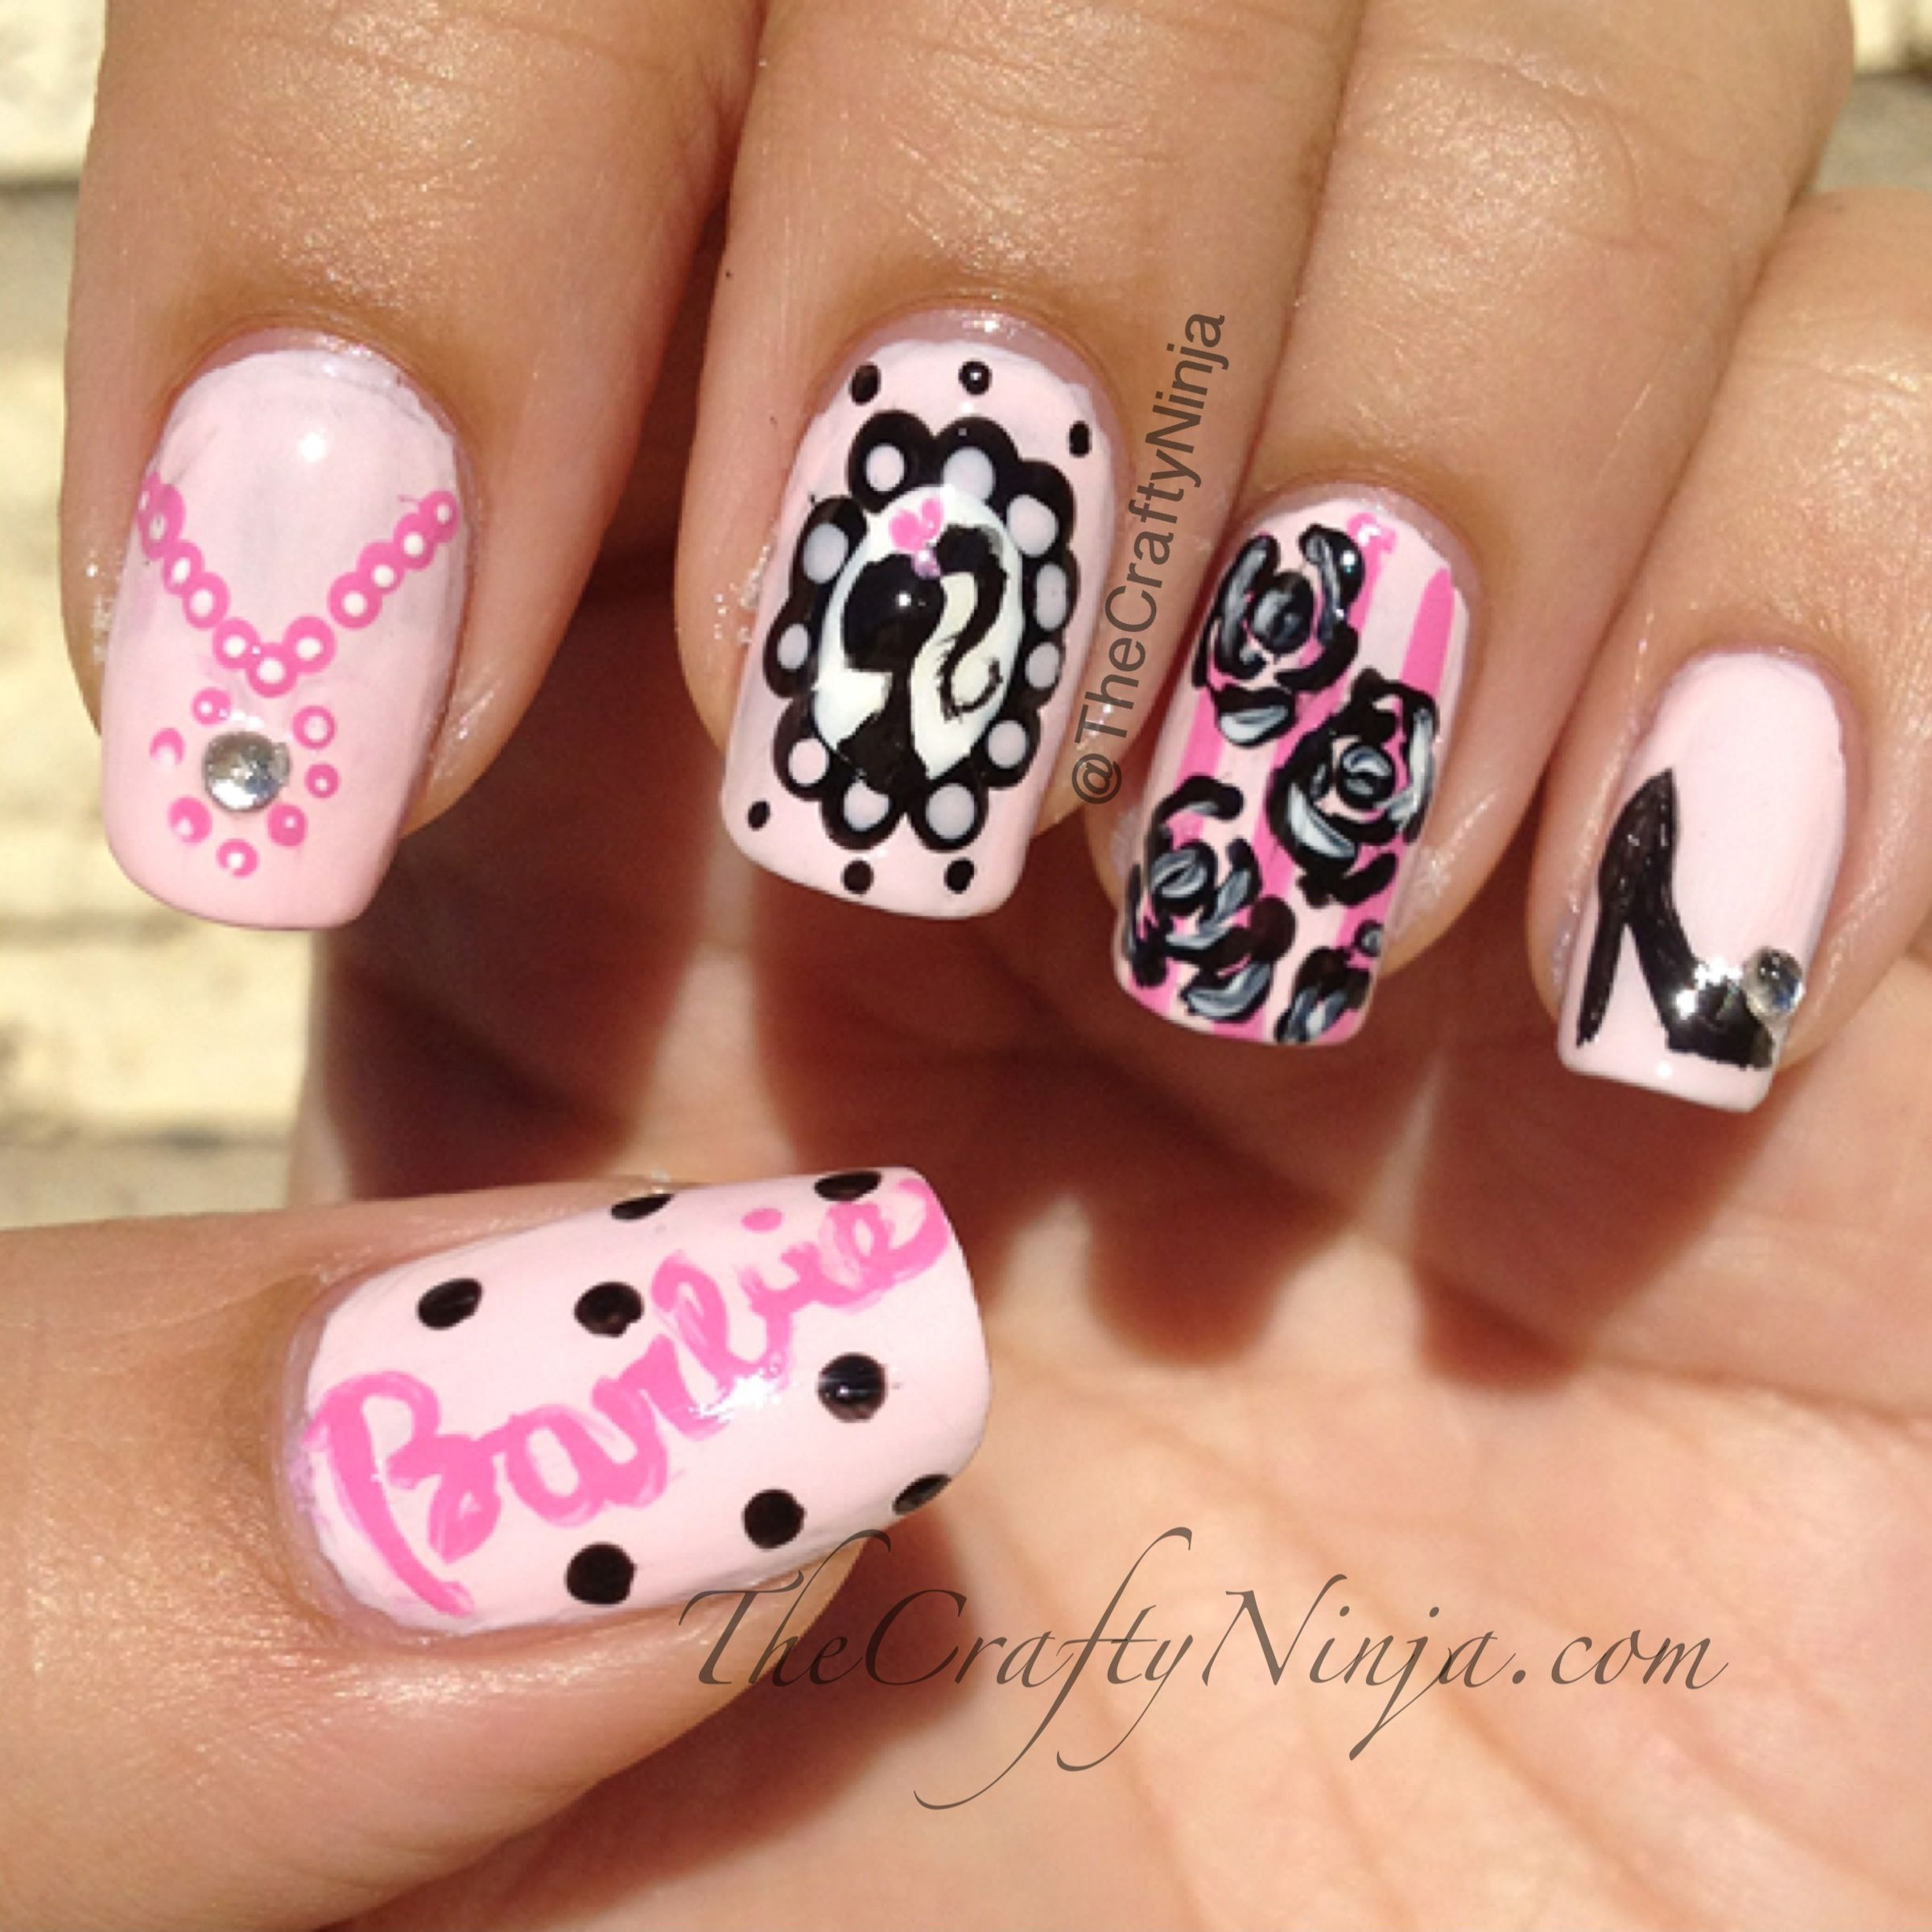 Chocolate Nails Art Game Online Nail Games: Best 25+ Barbie Nail Games Ideas On Pinterest